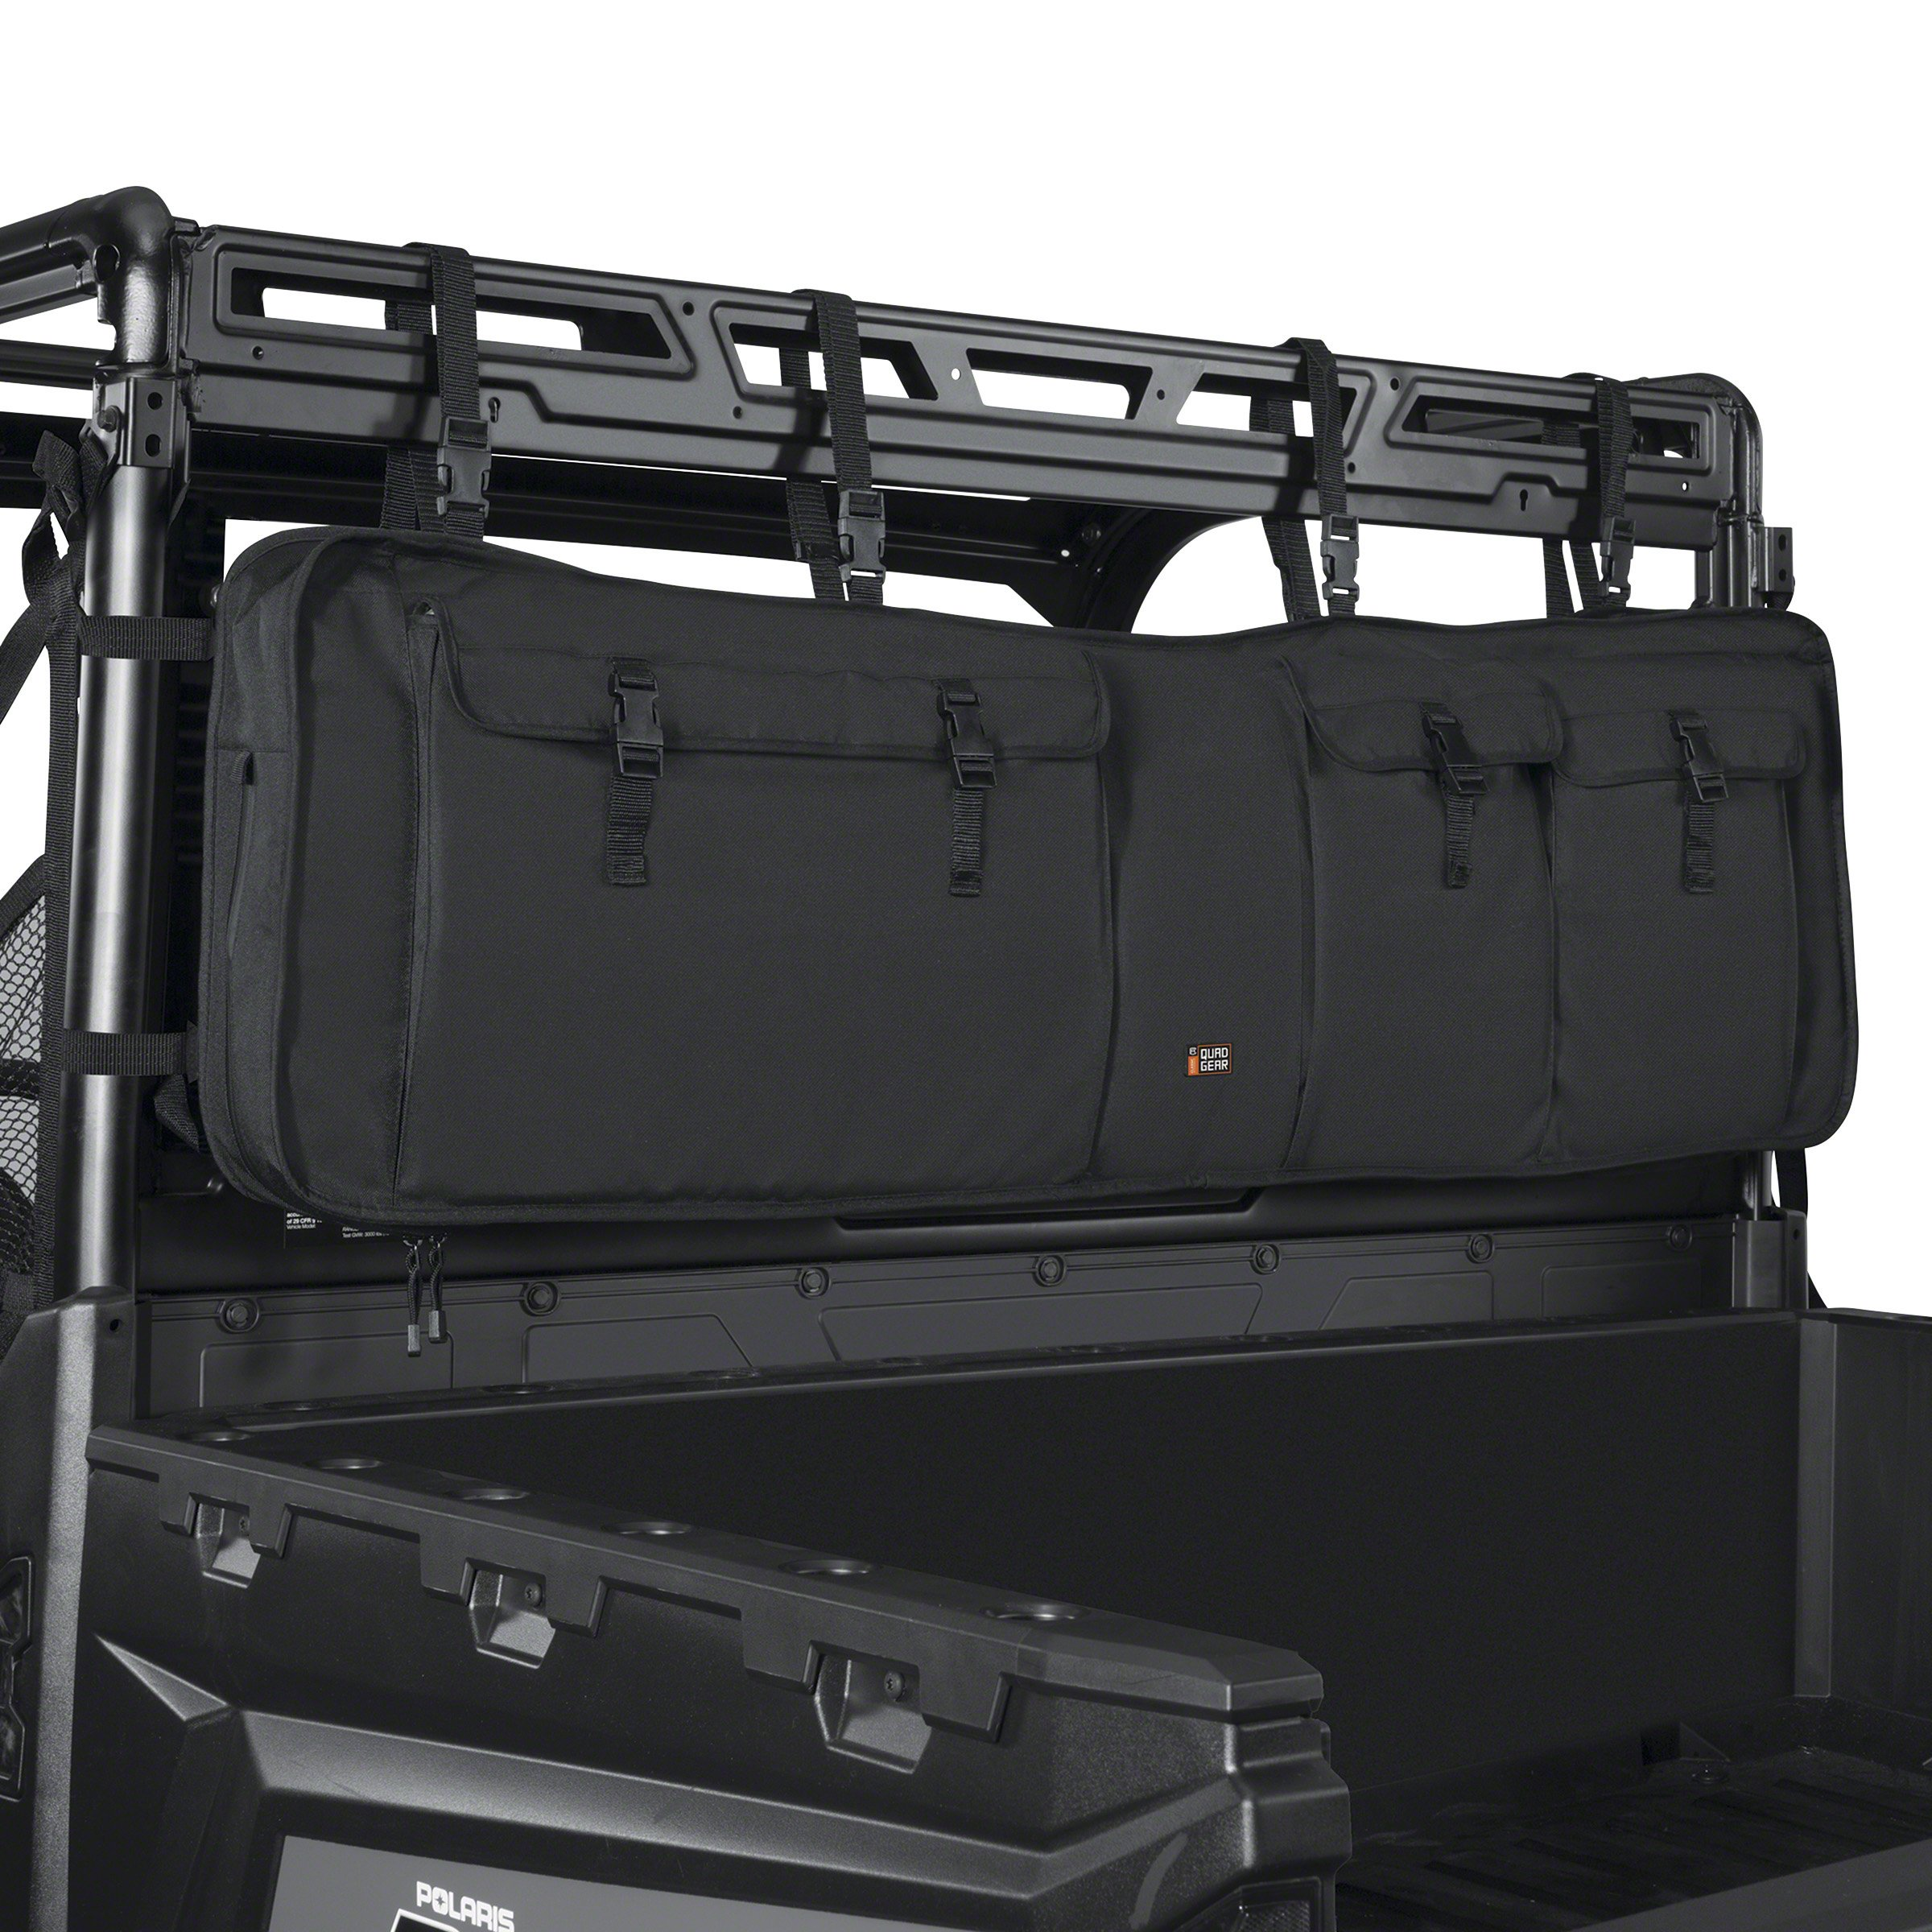 Classic Accessories 18-129-010401-00 Black QuadGear UTV Double Gun Carrier (For Most UTV Roll Cages) by Classic Accessories